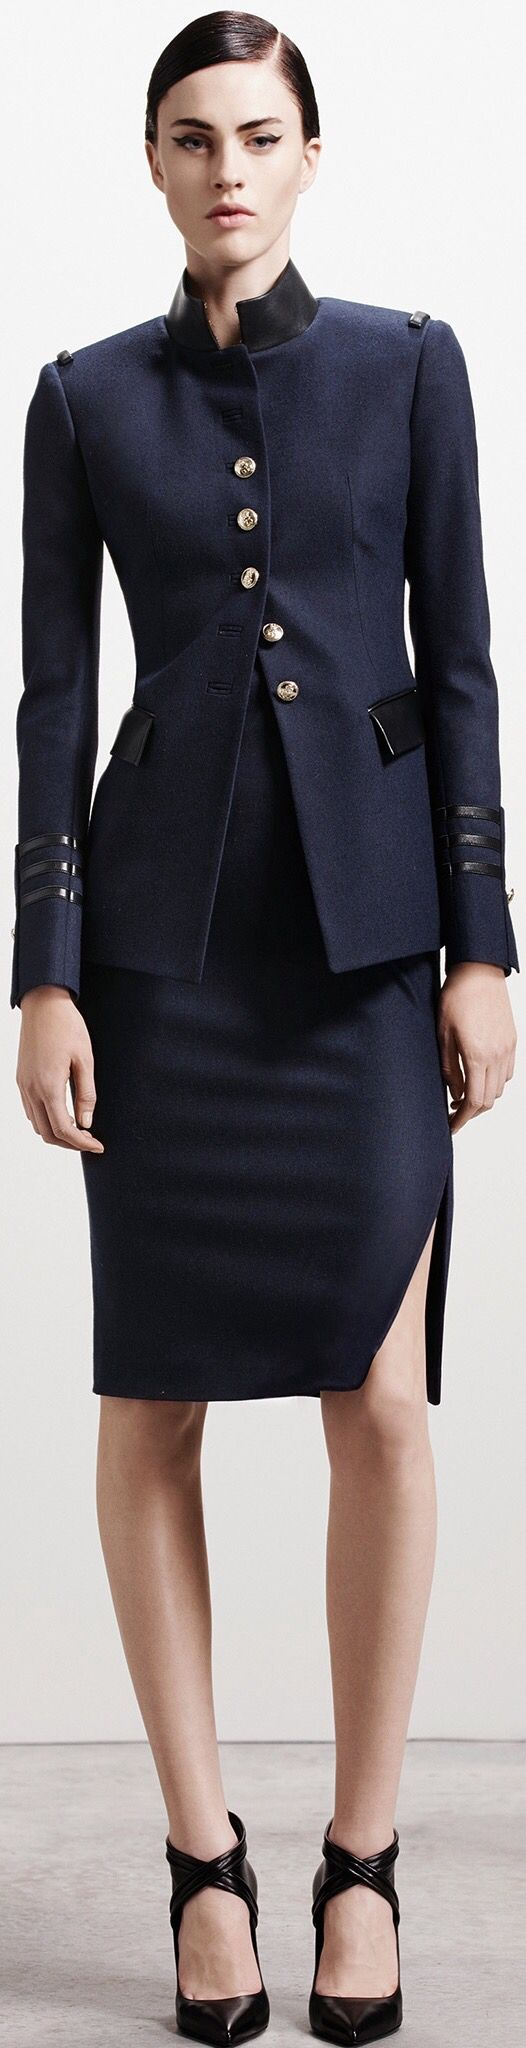 col // navy blue & leather // Altuzarra Pre-Fall 2015